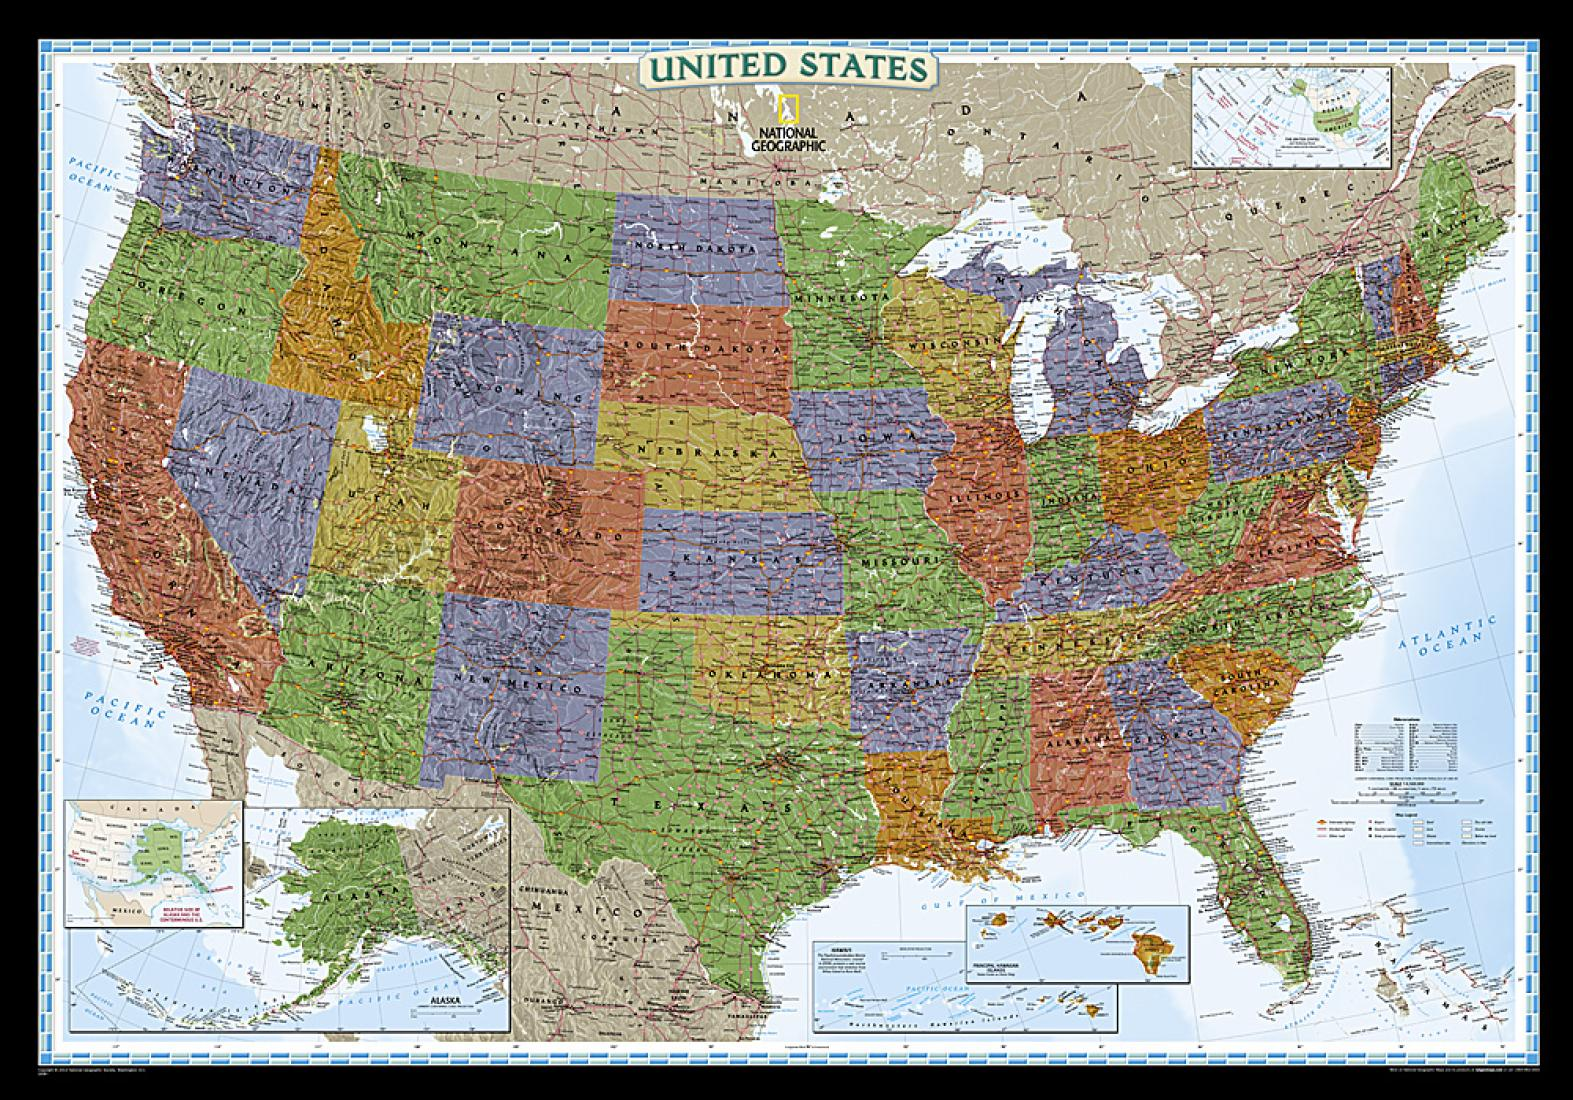 United States Decorator Enlarged Wall Map - Laminated (69.25 x 48 inches) on best road trip map, northeastern us map, natural gas fracking map, los angeles area map, state flag map, new york senate district map, greater boston area map, mid-atlantic region map, east of mississippi map, michigan state map, asia pacific region map, tri-state area map, greater seattle area map, usa map, eastern us map, intermountain west map, idaho state map, continental u.s. map, local map, southern u.s. map,